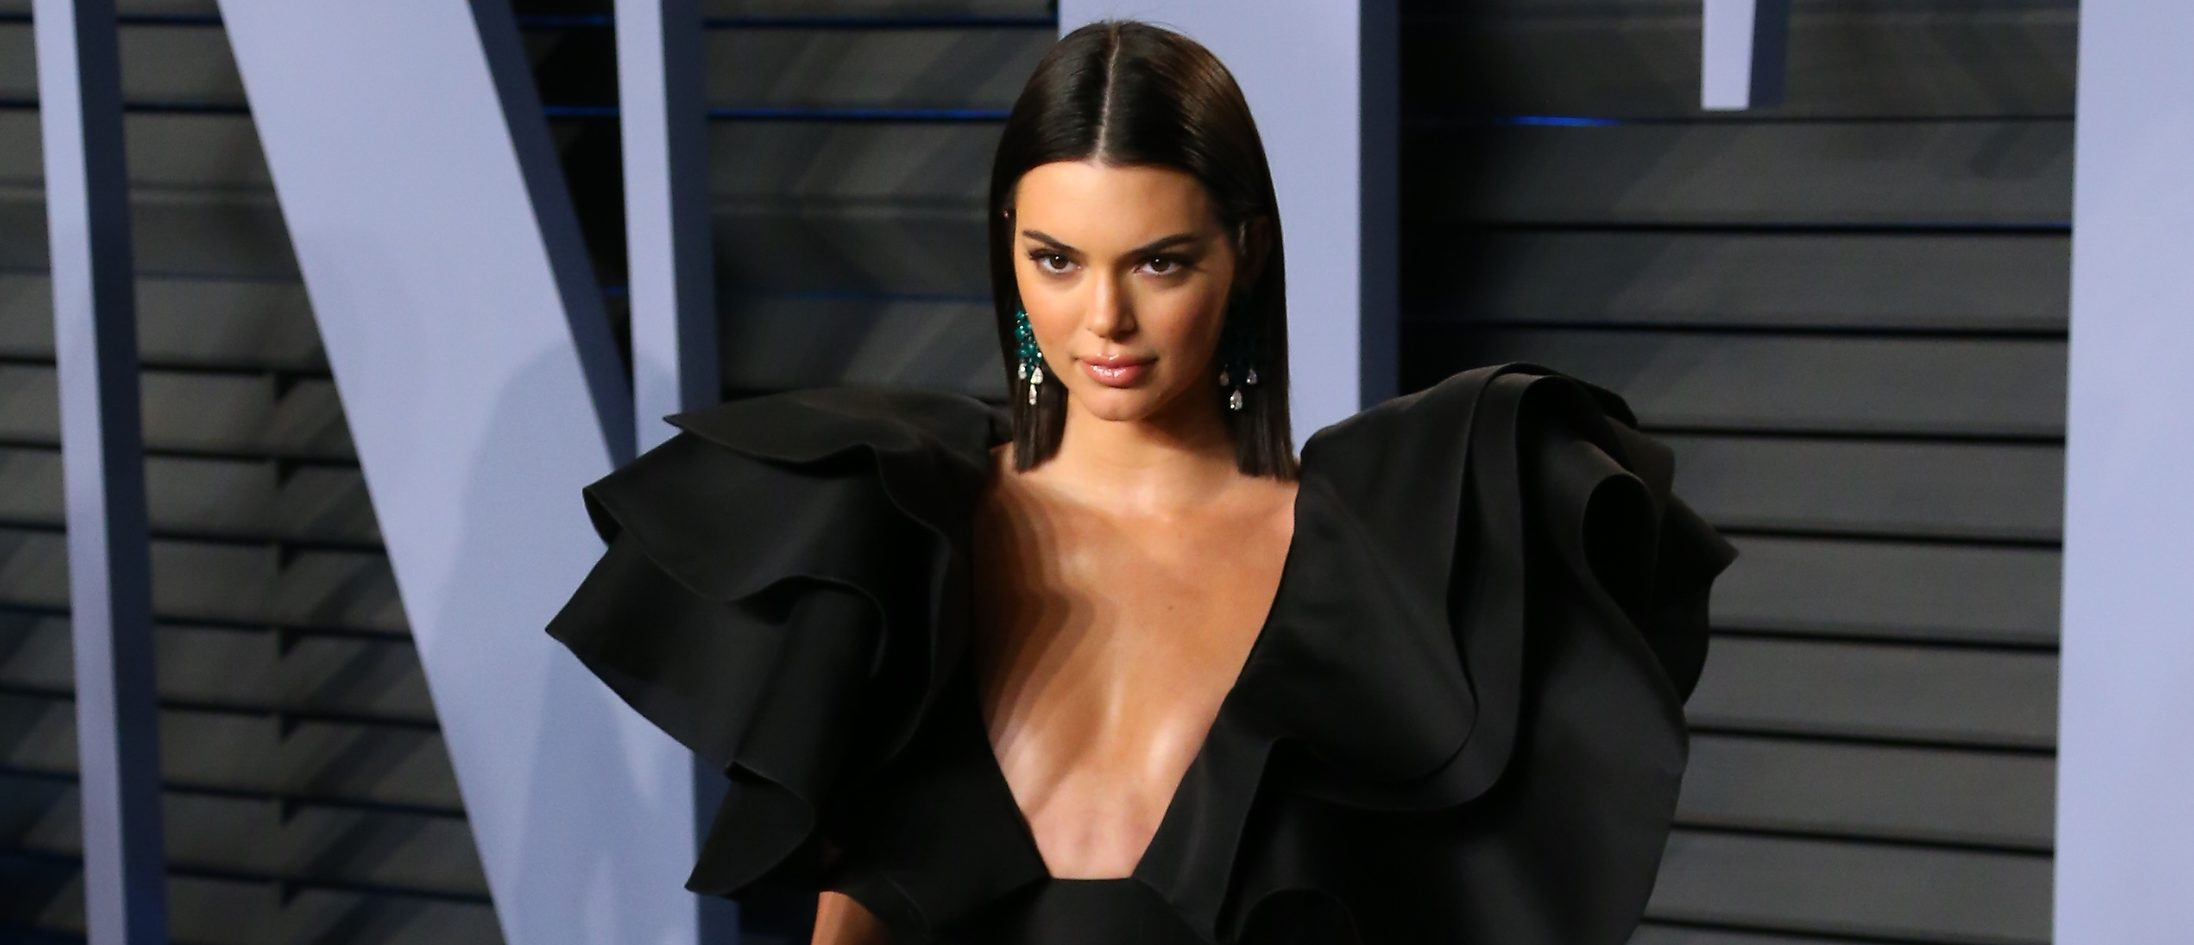 Kendall Jenner attends the 2018 Vanity Fair Oscar Party following the 90th Academy Awards at The Wallis Annenberg Center for the Performing Arts in Beverly Hills, California, on March 4, 2018. (Photo: JEAN-BAPTISTE LACROIX/AFP/Getty Images)